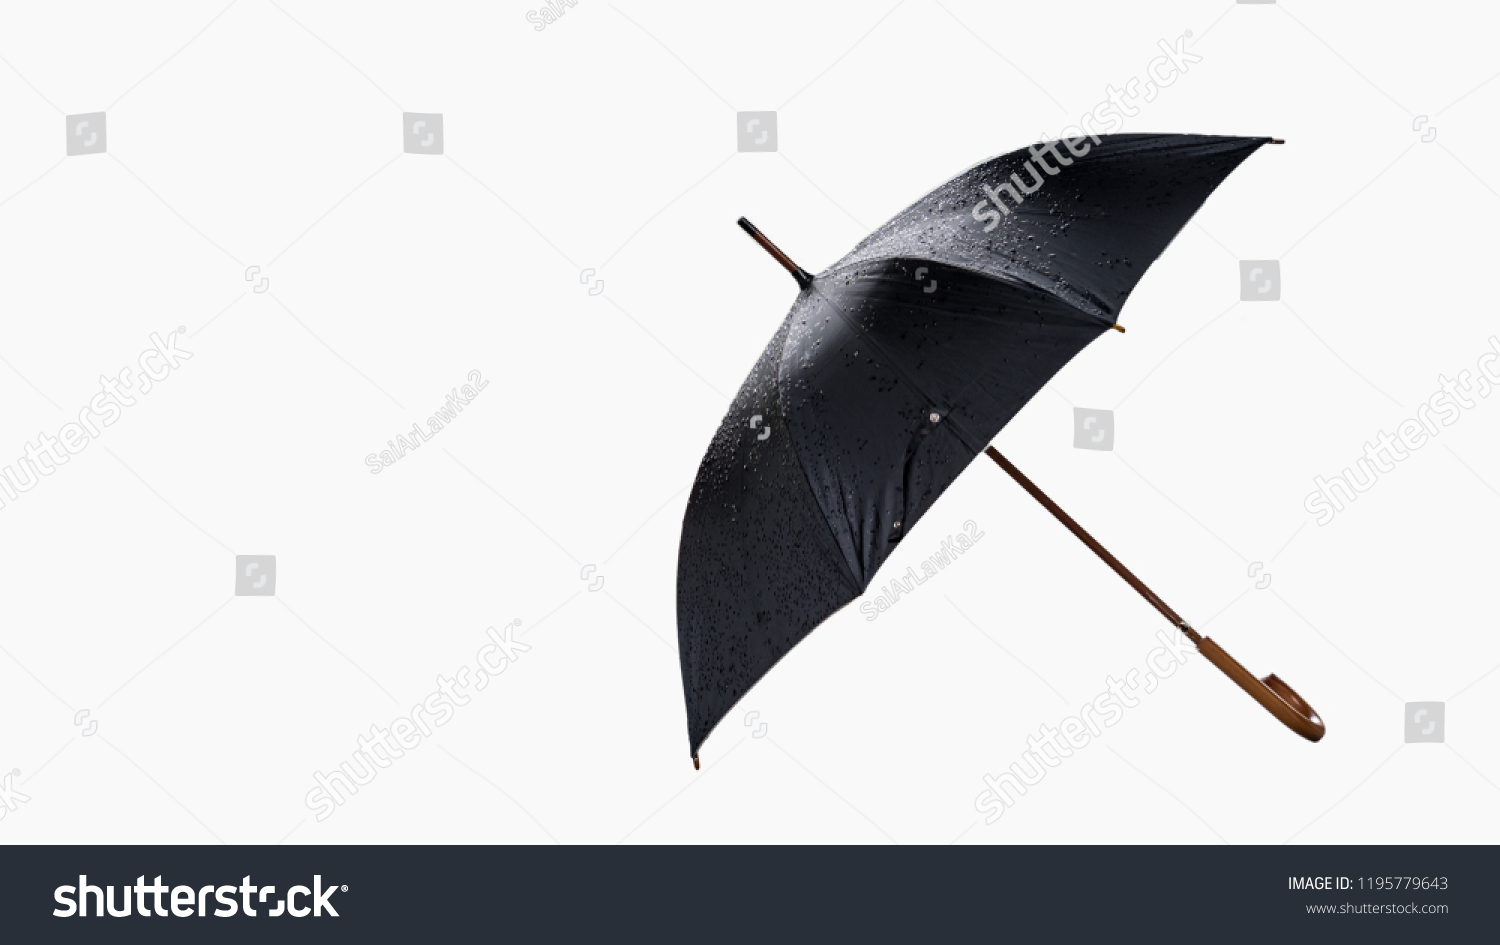 Black Umbrella Cut Out The Background Made Of White